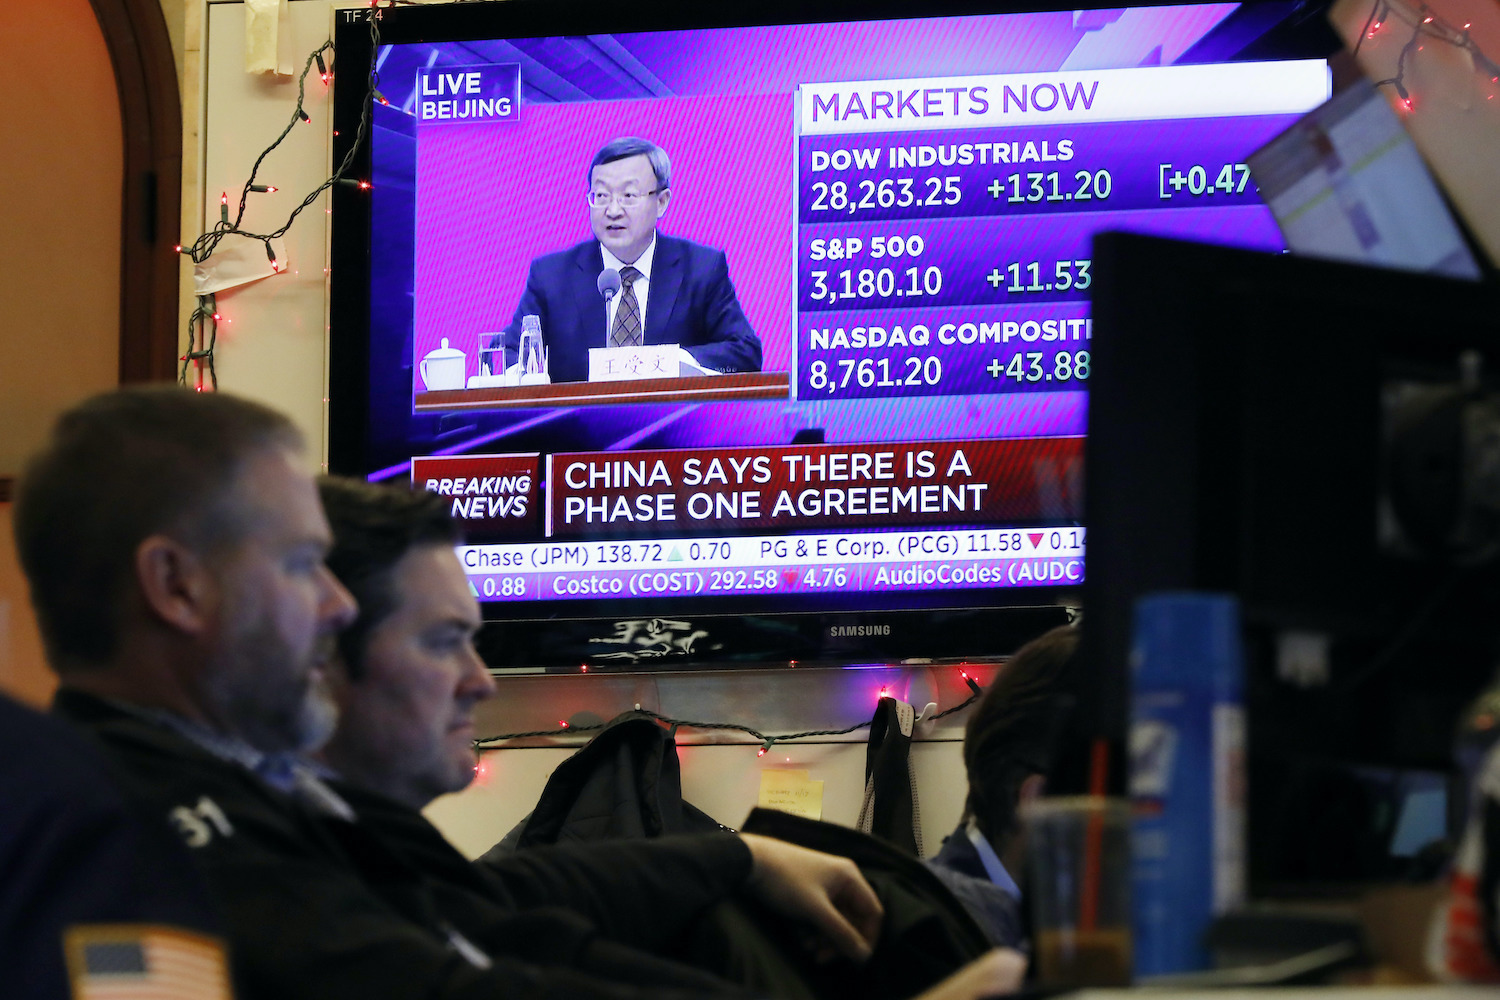 Traders work at the New York Stock Exchange in front of a monitor showing a Chinese official discussing the trade deal with the United States on Friday. (AP Photo)